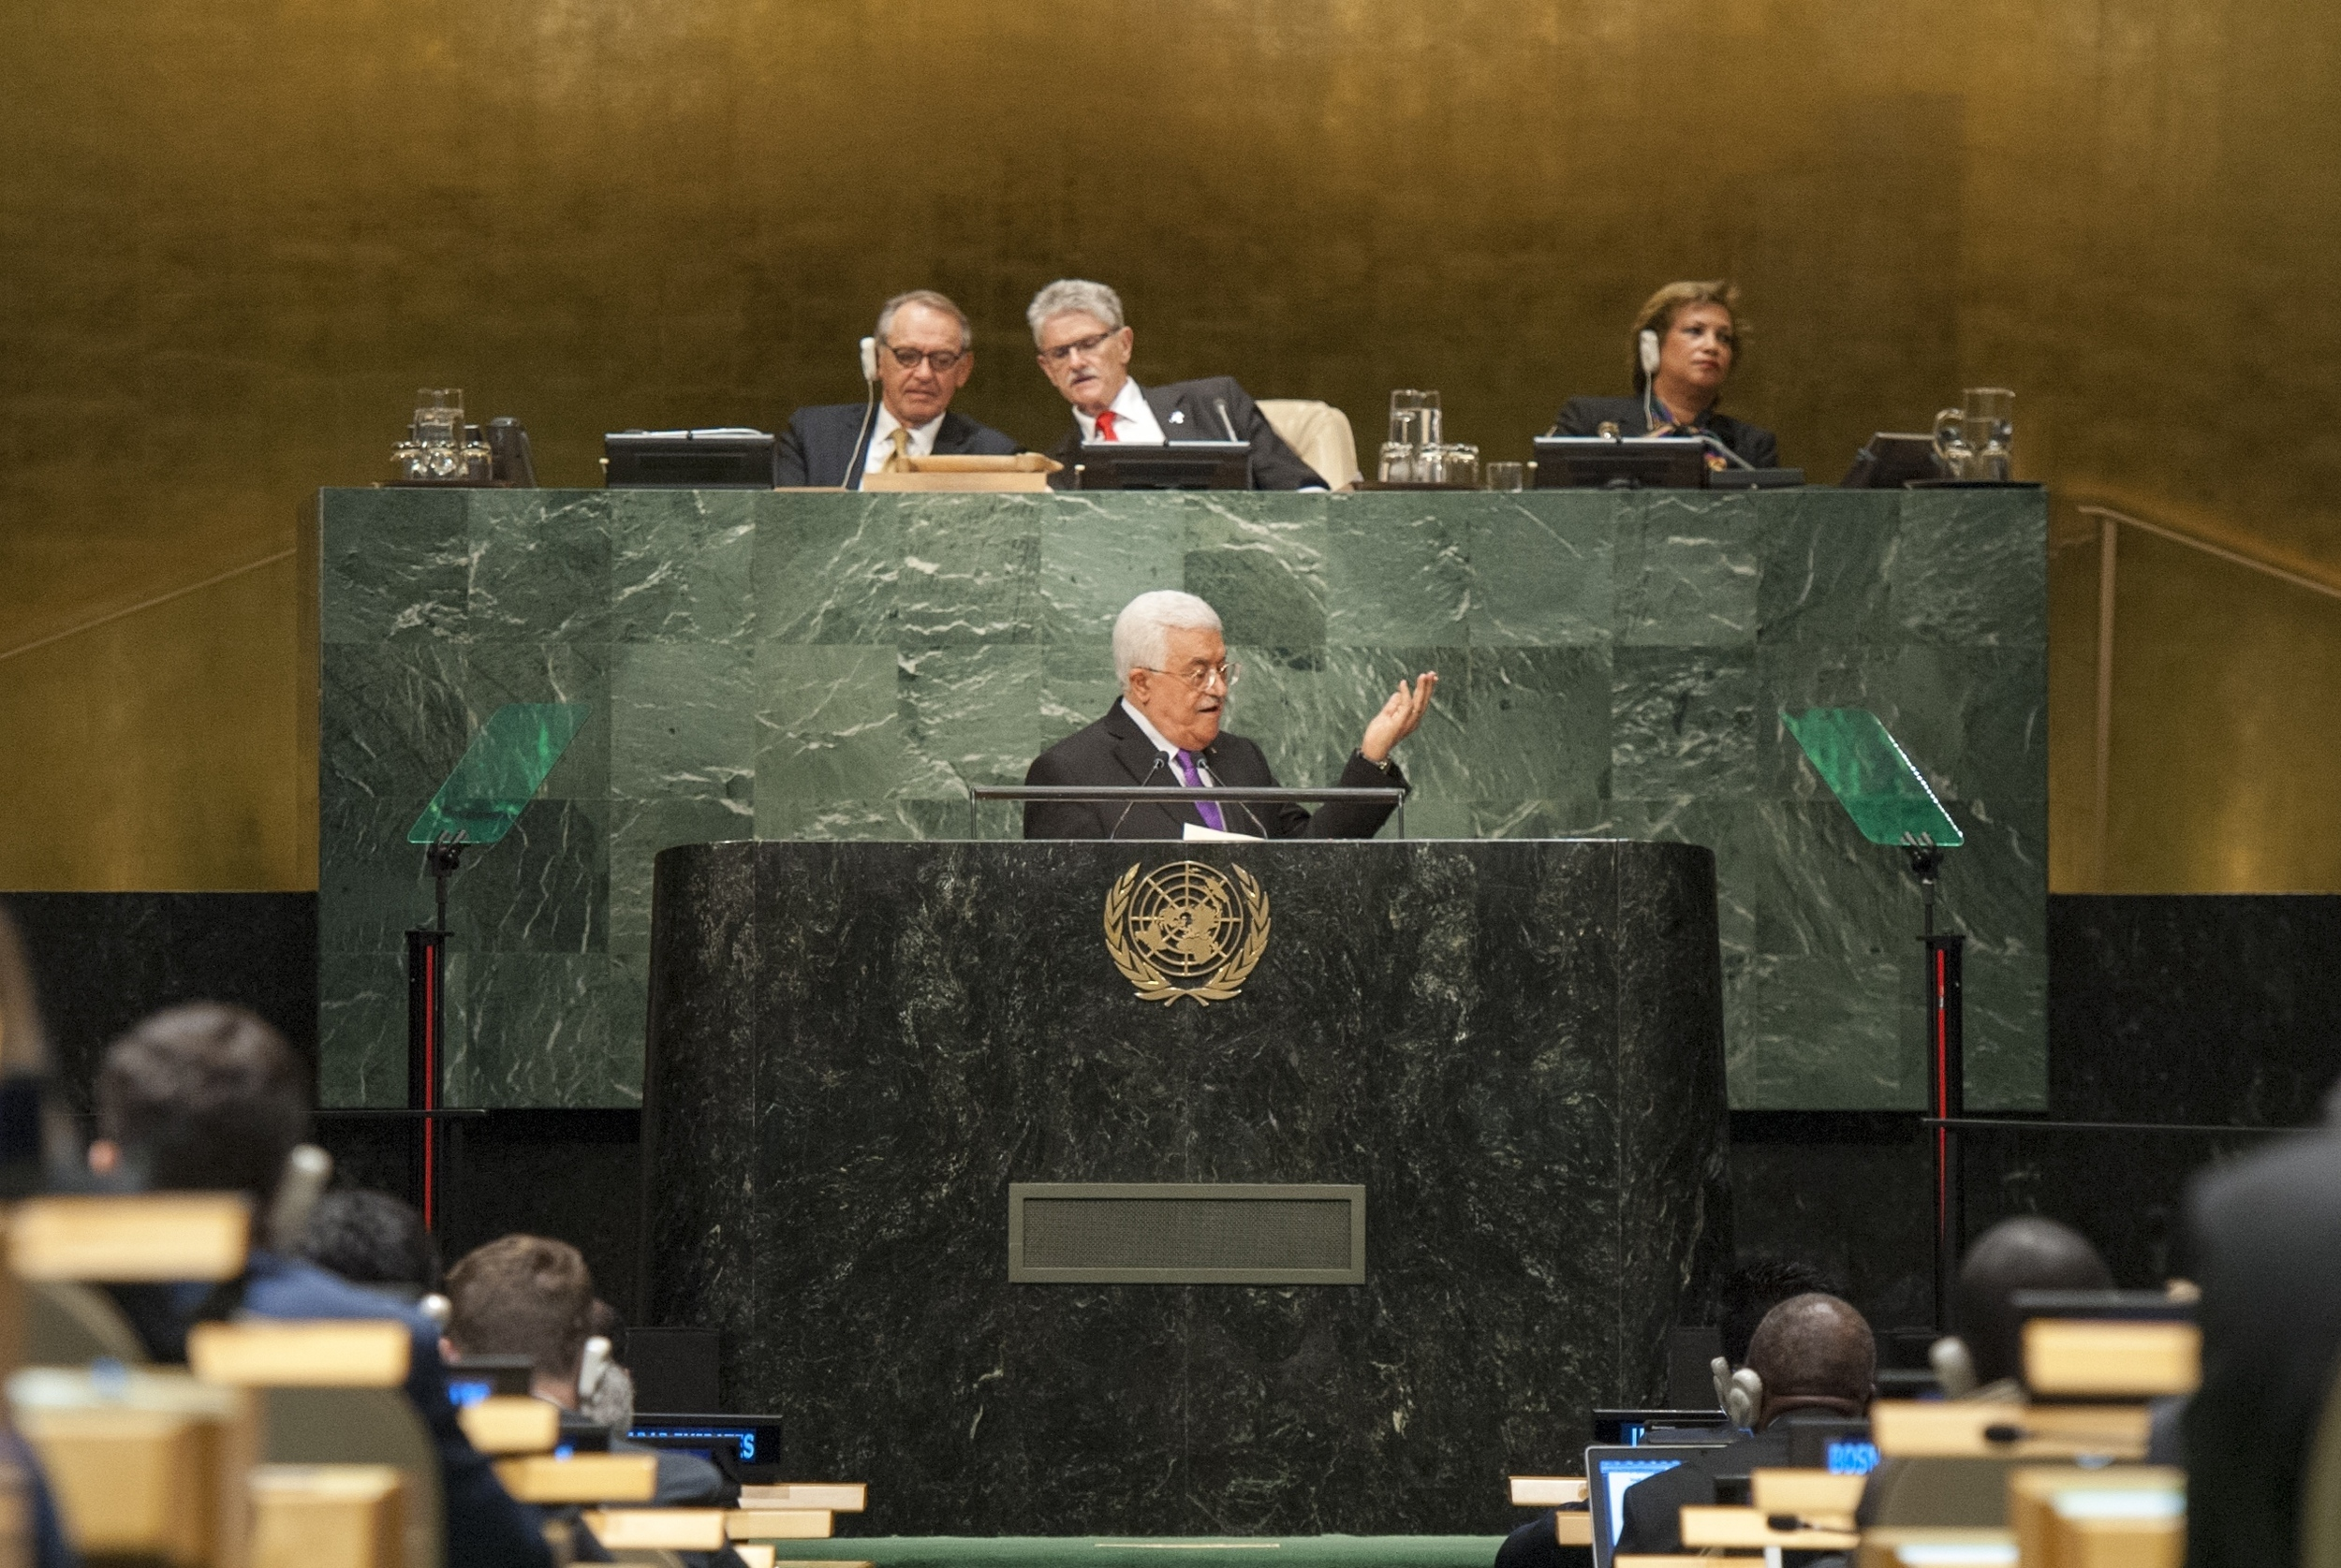 Palestinian Authority President Mahmoud Abbas addresses the United Nations General Assembly on Wednesday. Credit: UN Photo/Cia Pak.